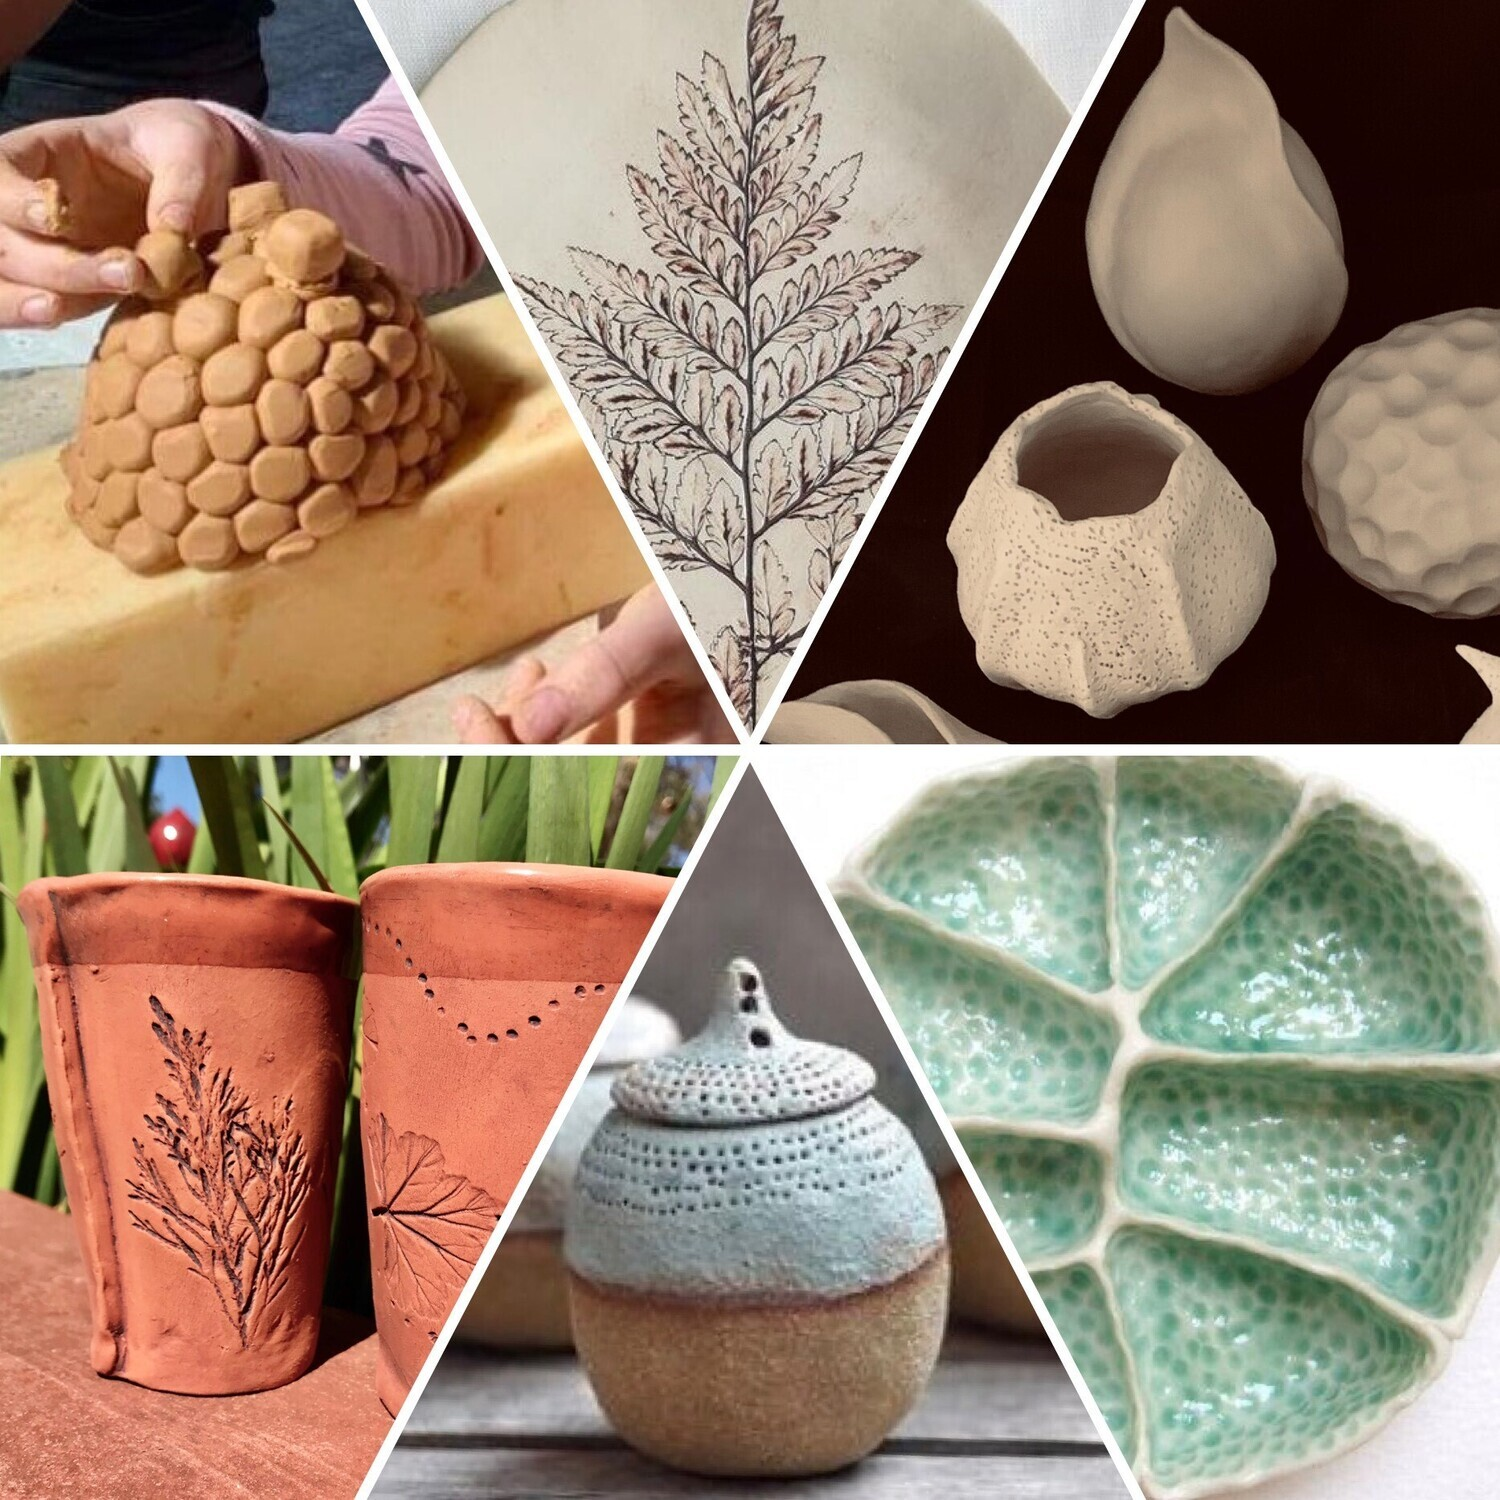 Hand-Building Pottery Workshop - 12th June 2-4pm